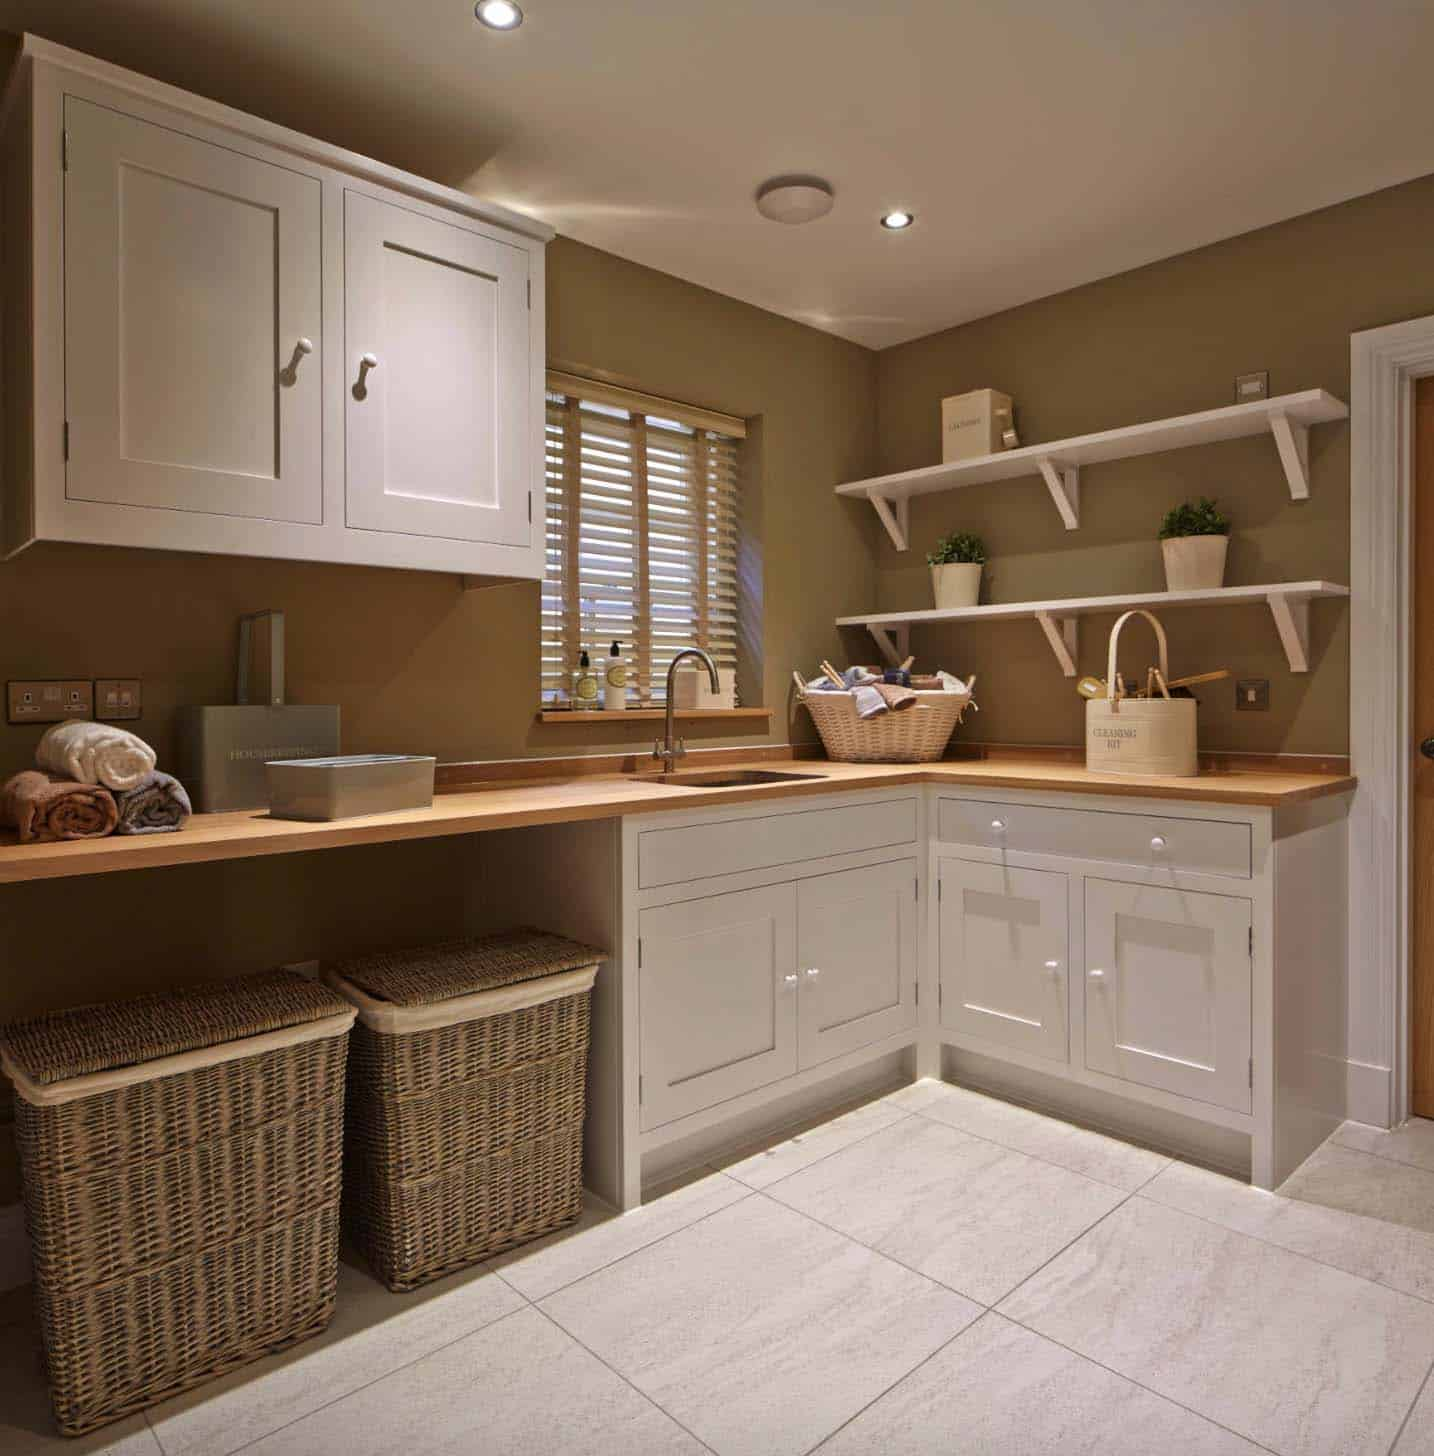 Utility Room Ideas: 30+ Unbelievably Inspiring Farmhouse Style Laundry Room Ideas